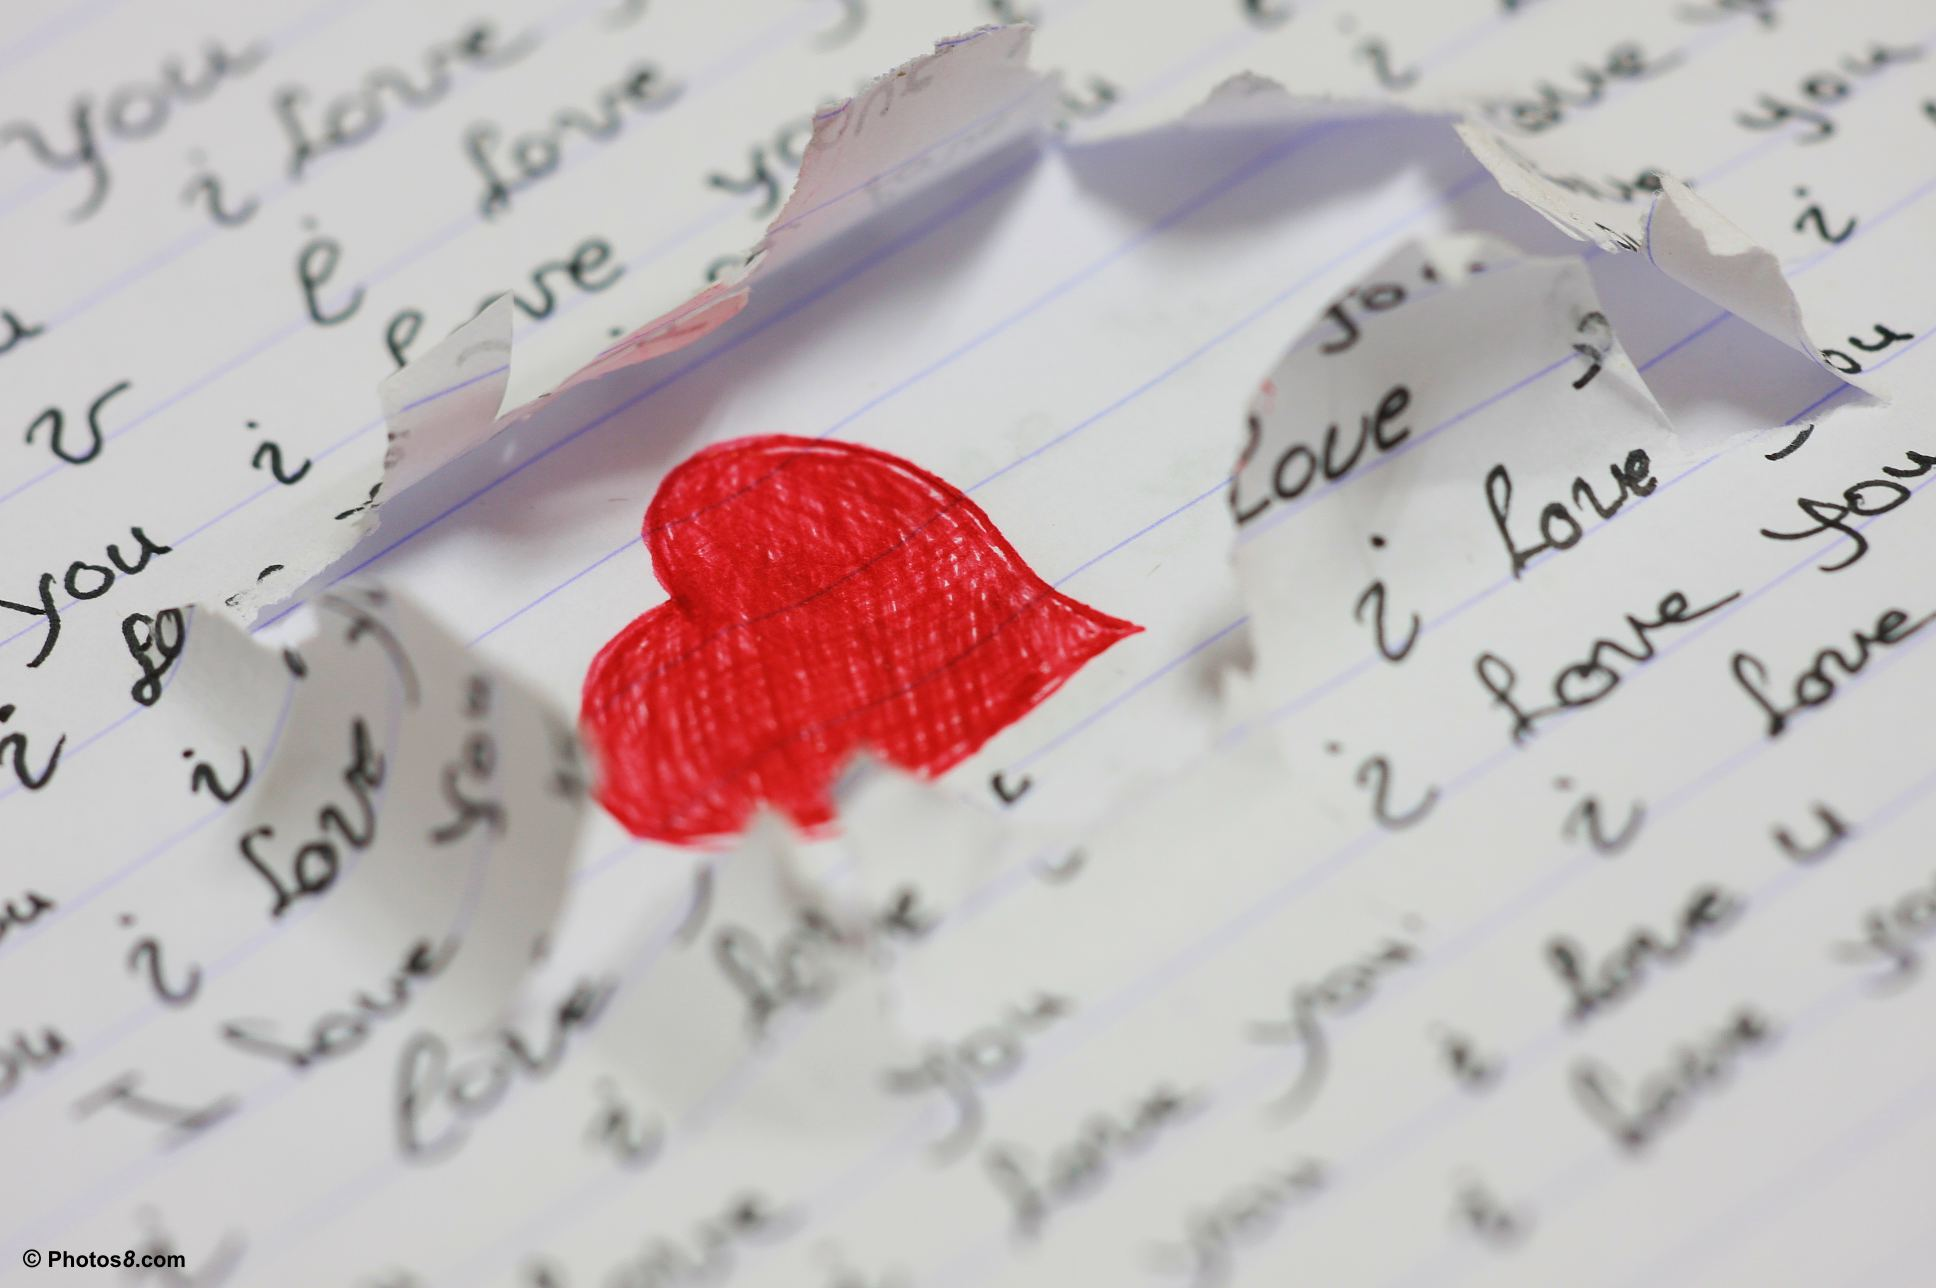 the other lover essay Sample essay words 1,320 another type of love that leads to harm is the love of animals it is better than the love of things because an animal understands your passions as a human being and has the capability of returning love too.